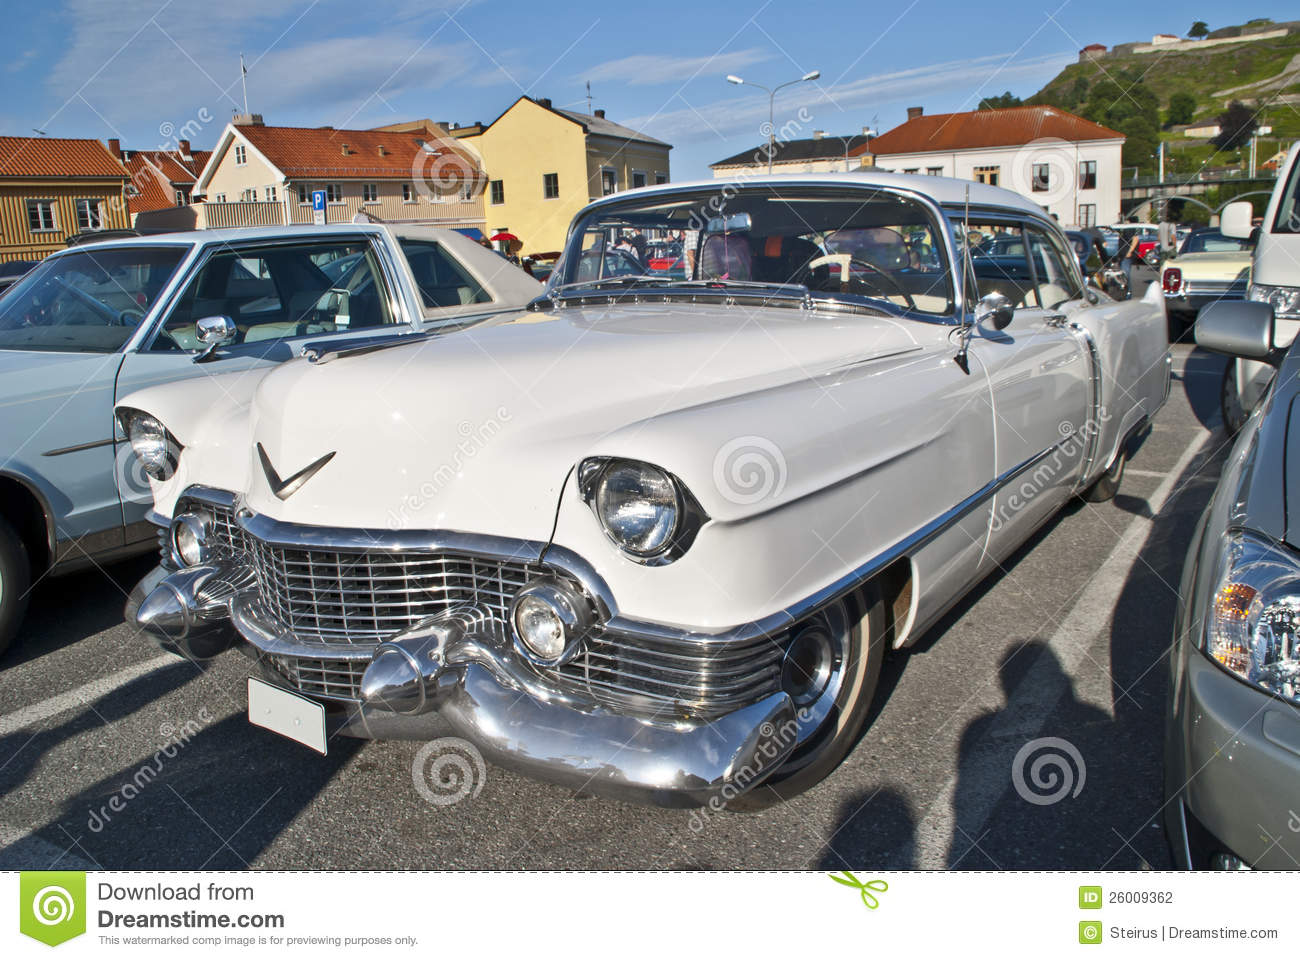 Am car meeting in halden classic american car stock for Old american cars